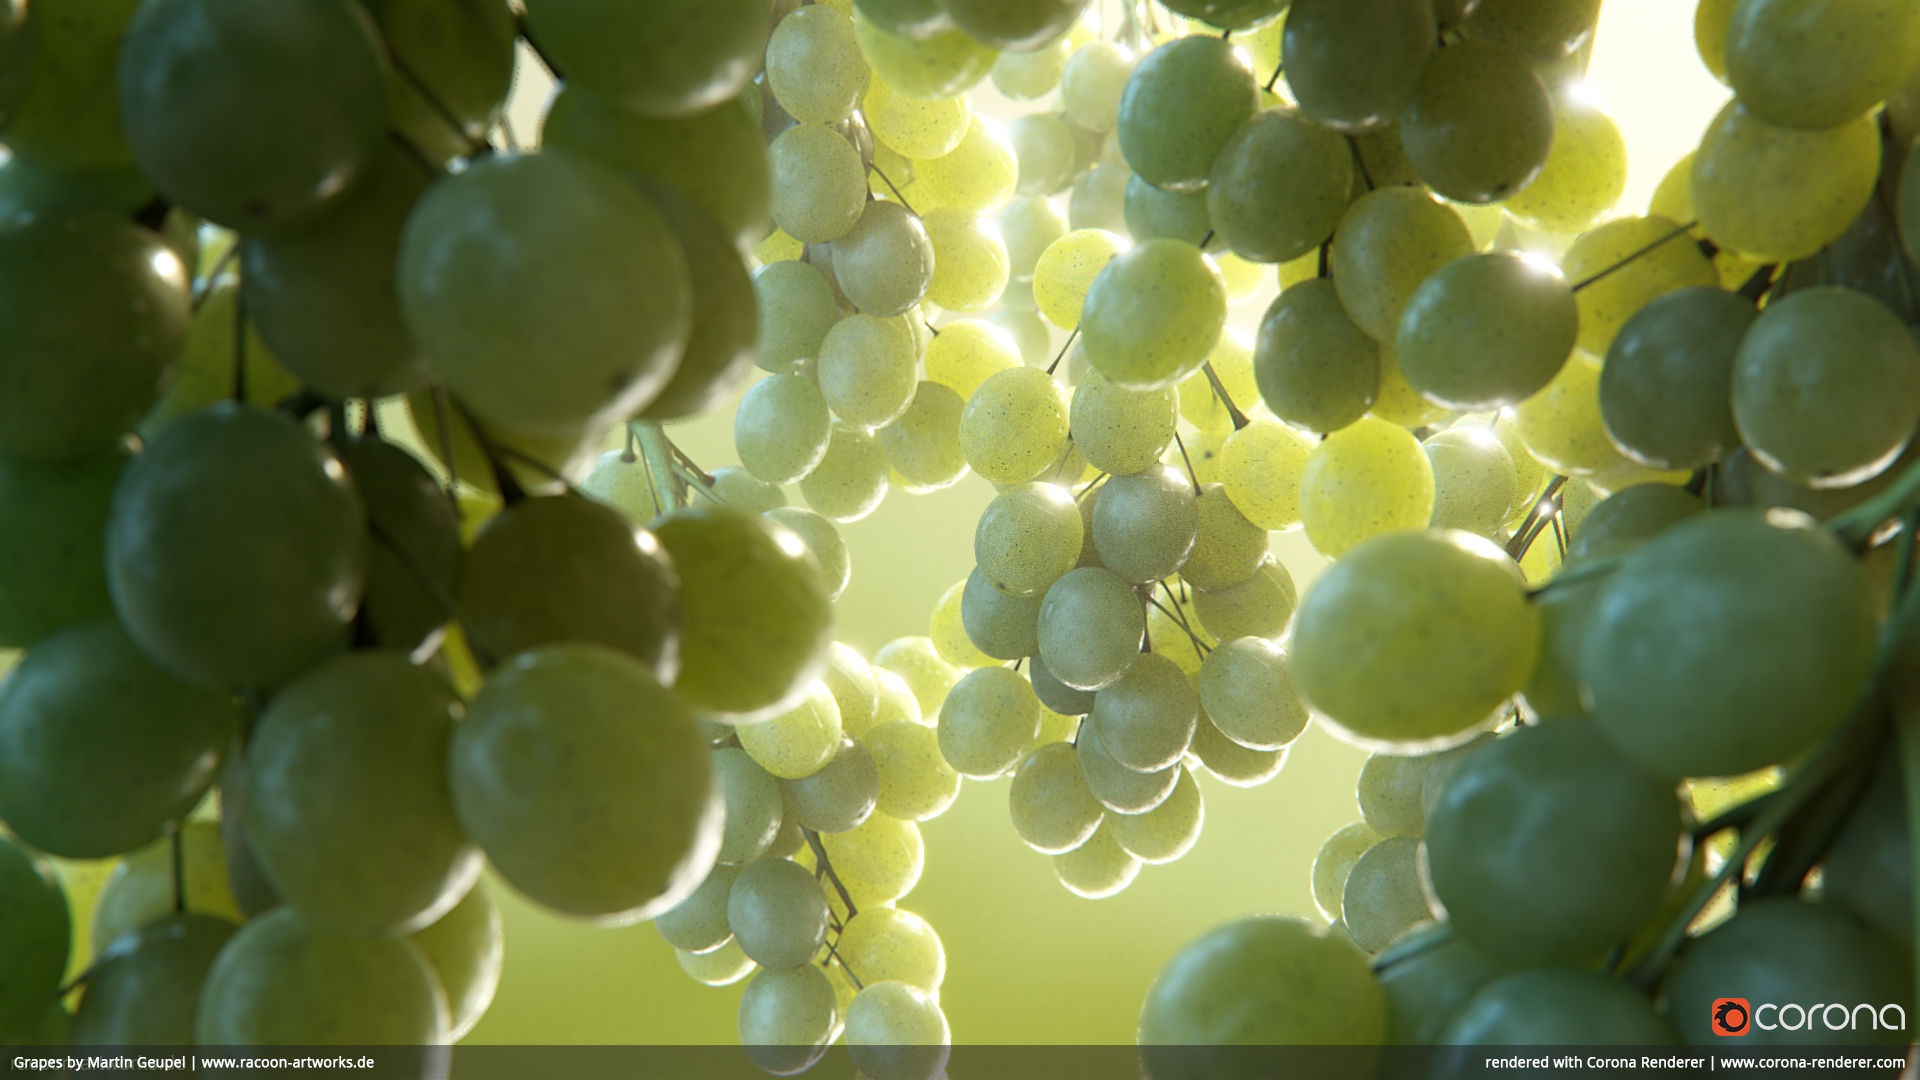 Grapes by Martin Geupel